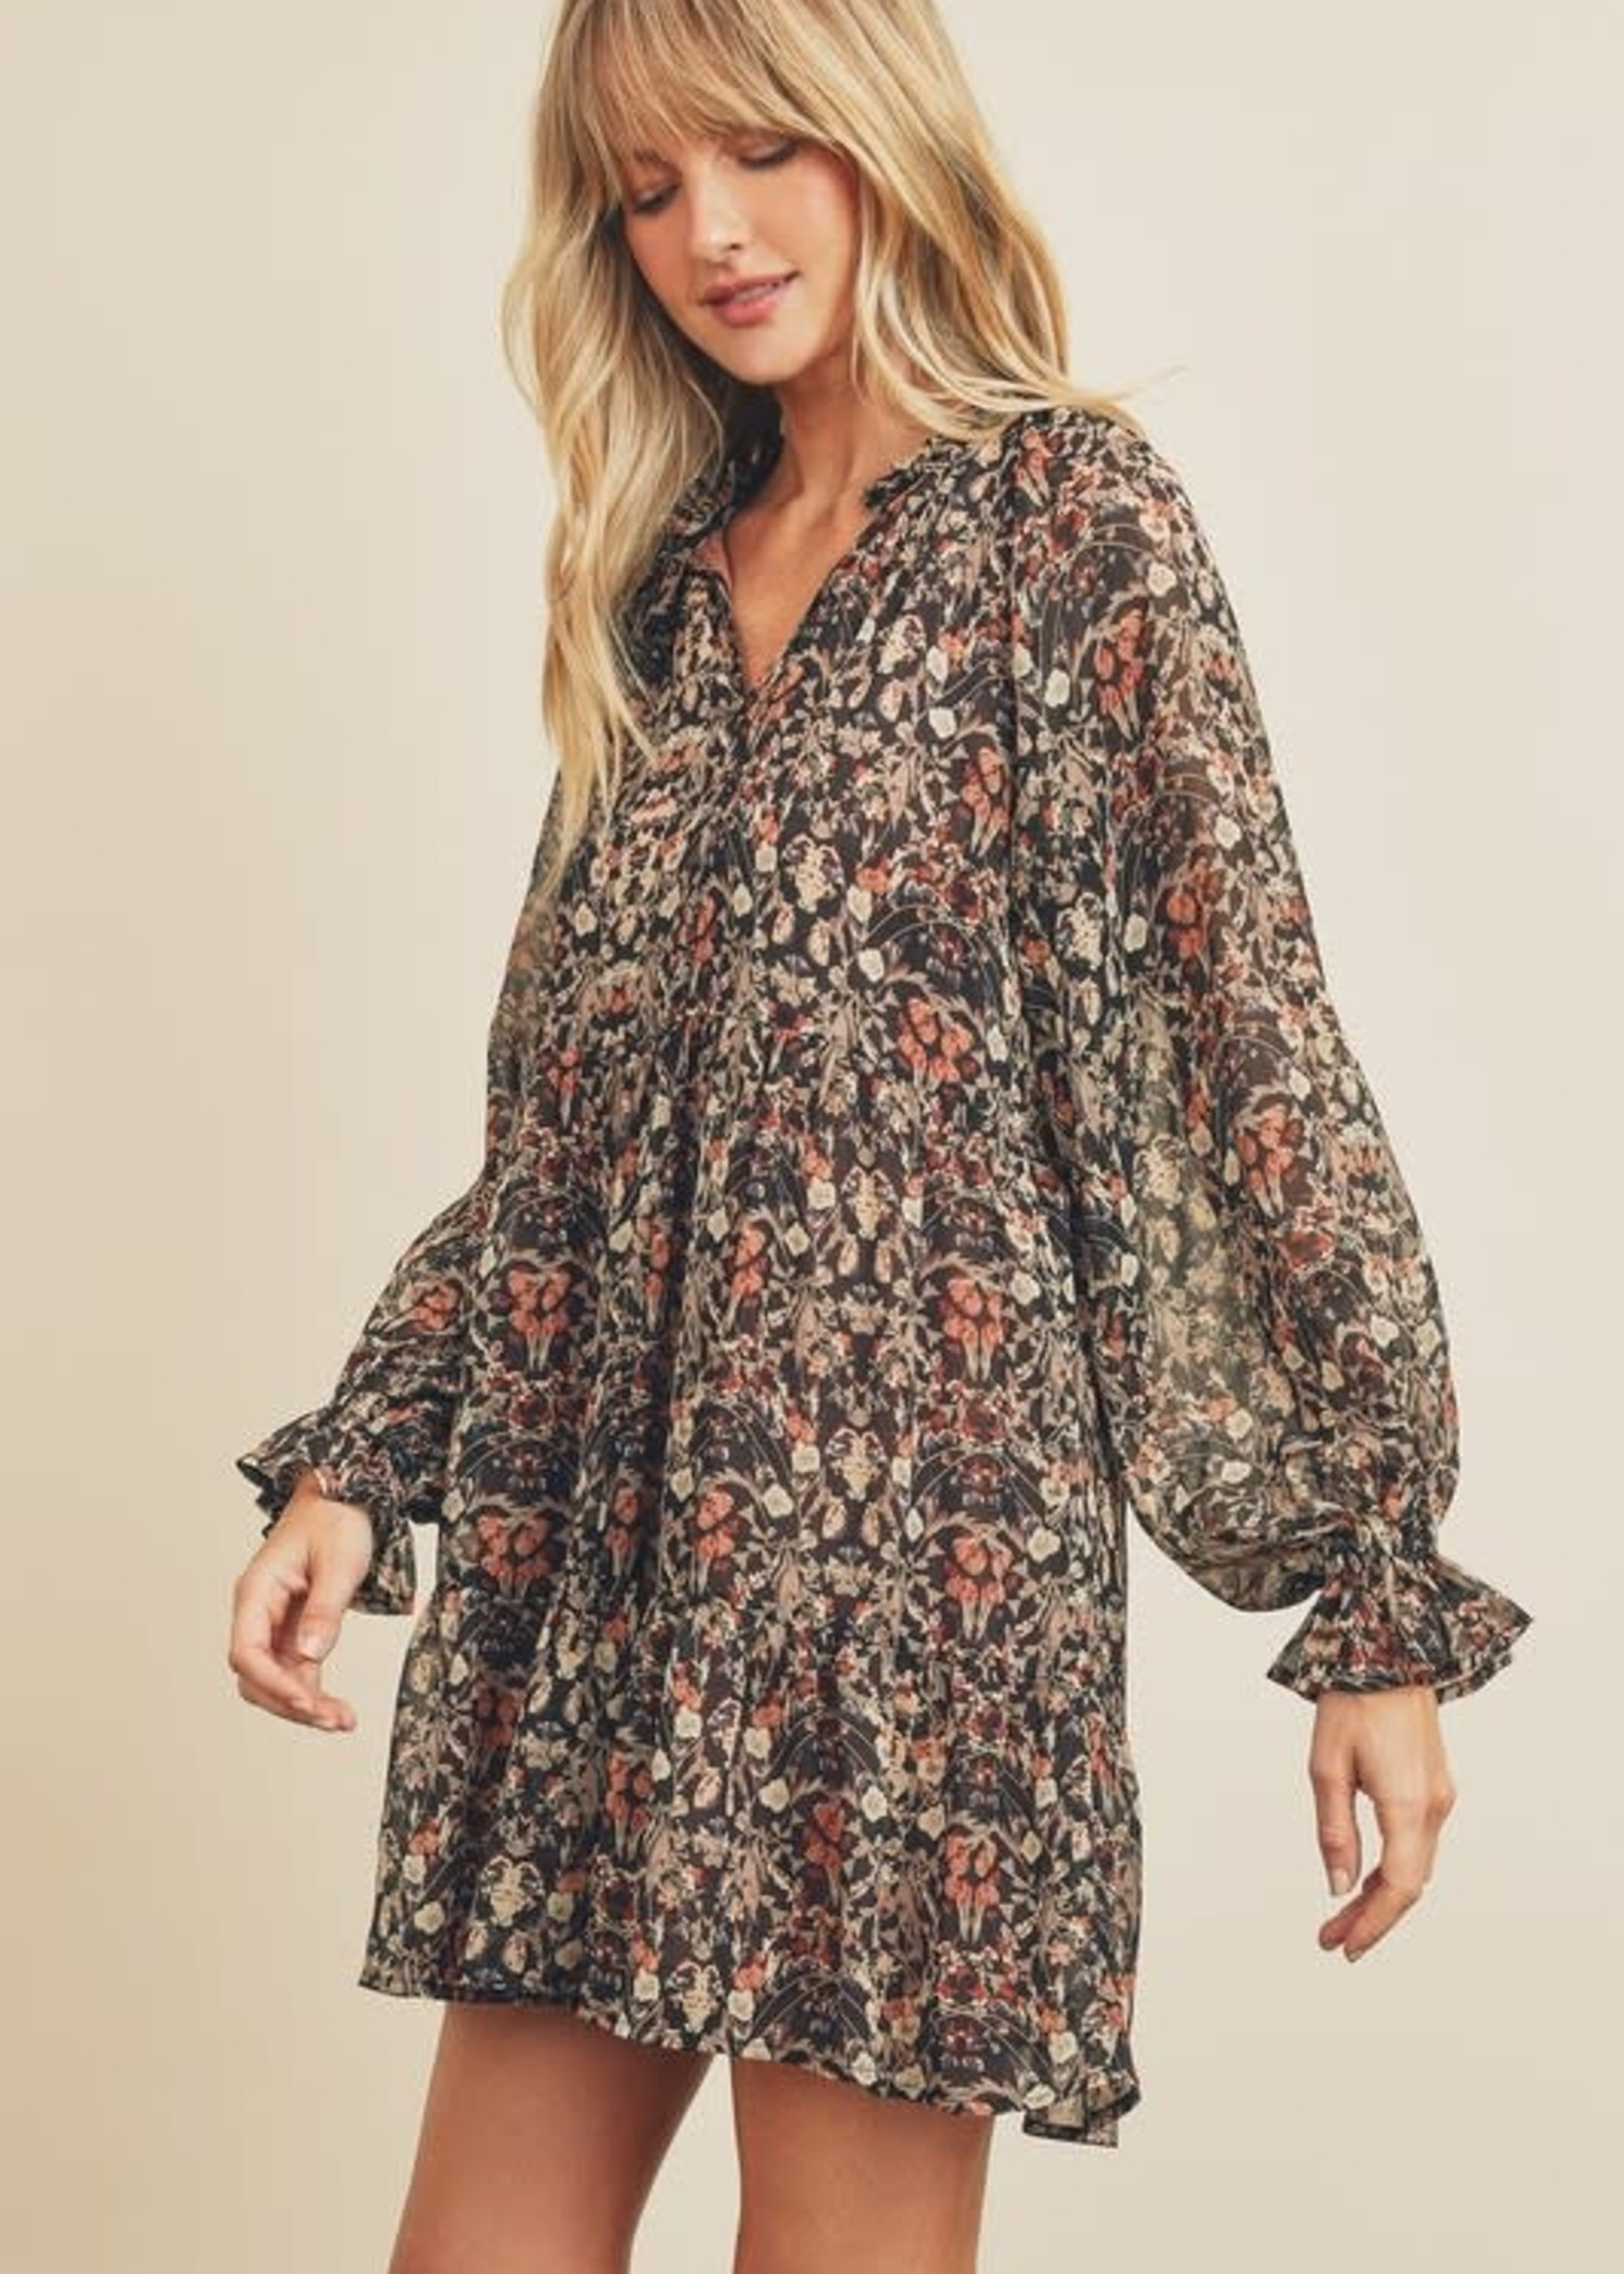 Fall Florals Forever Dress